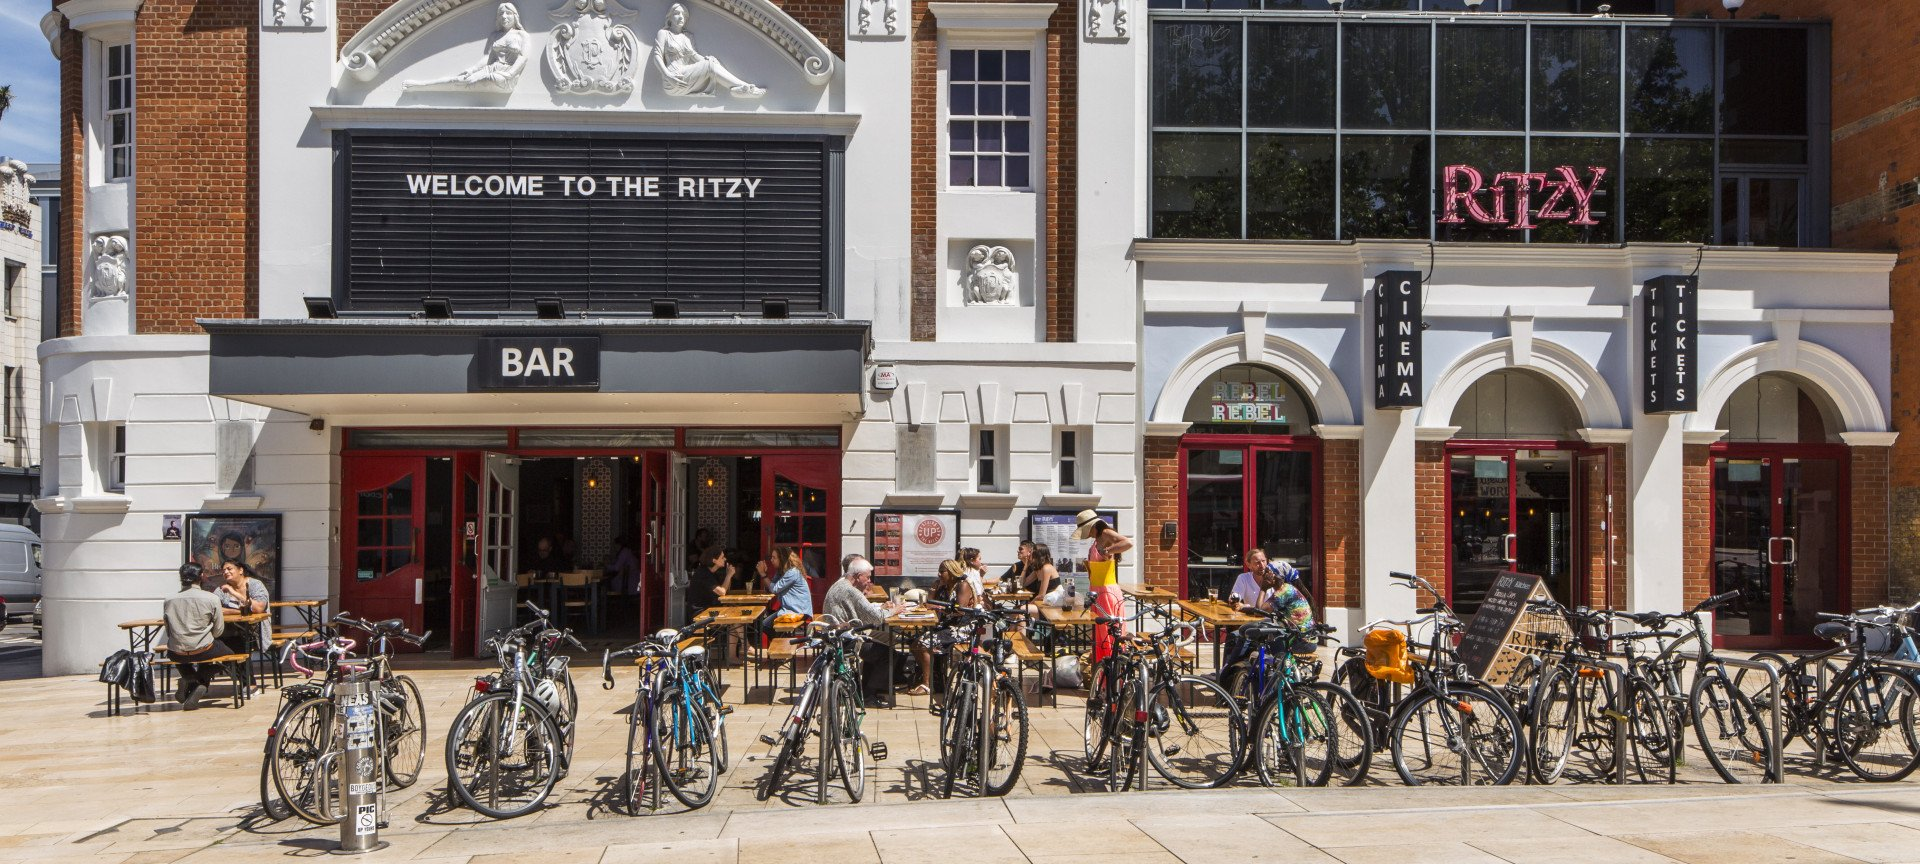 Welcome to<br>The Ritzy, Brixton